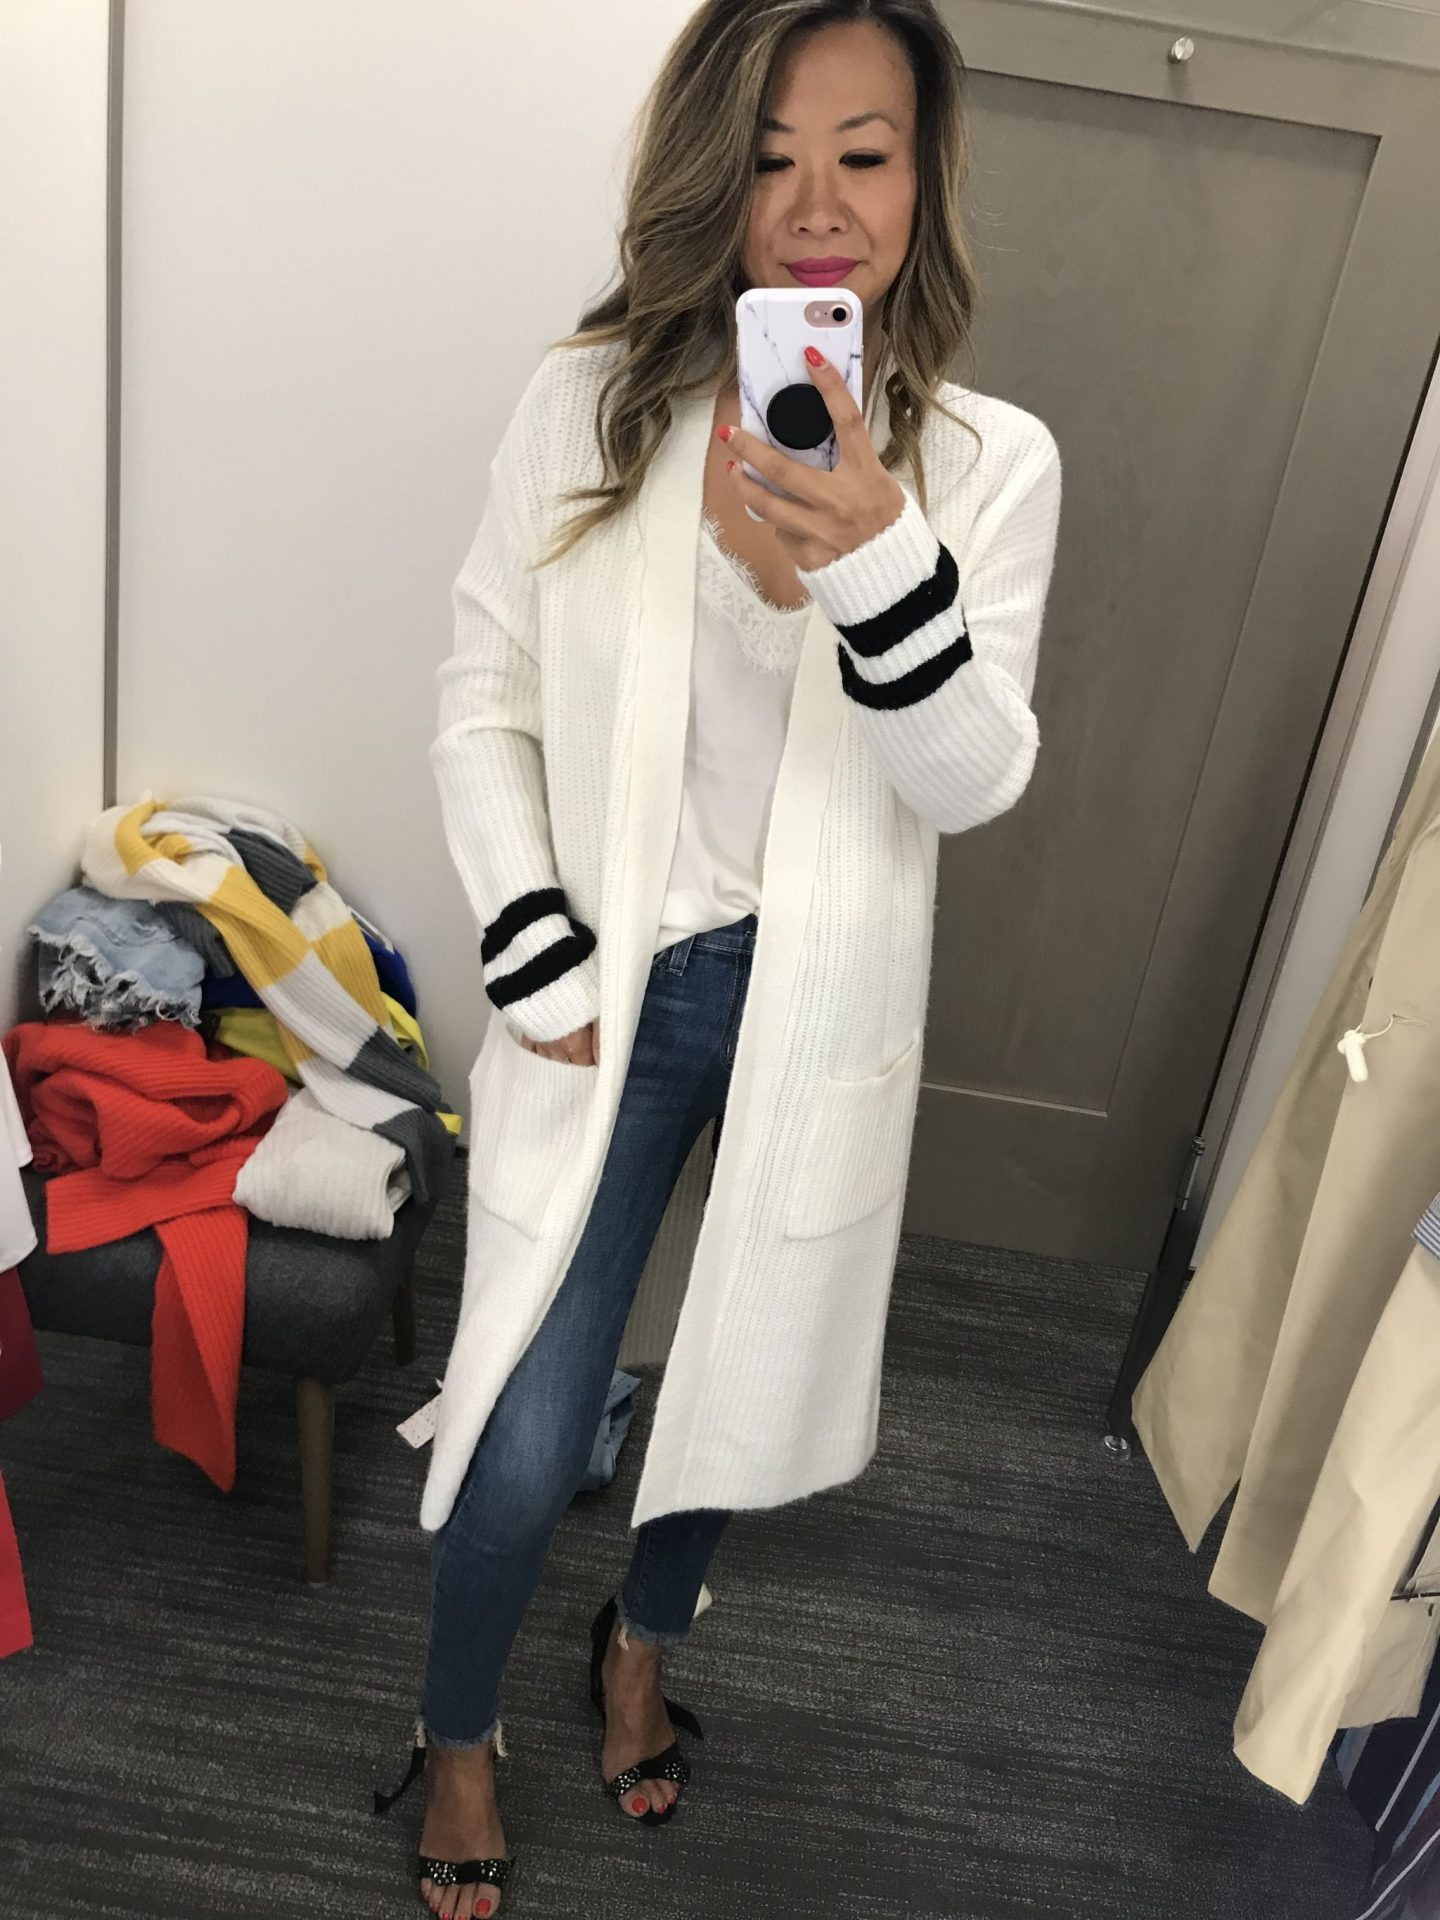 Nordstrom Anniversary Sale picks, Style Steals from Nordstrom, Jennifer Worman Nordstrom favorites, Best Cardigan Nordstrom